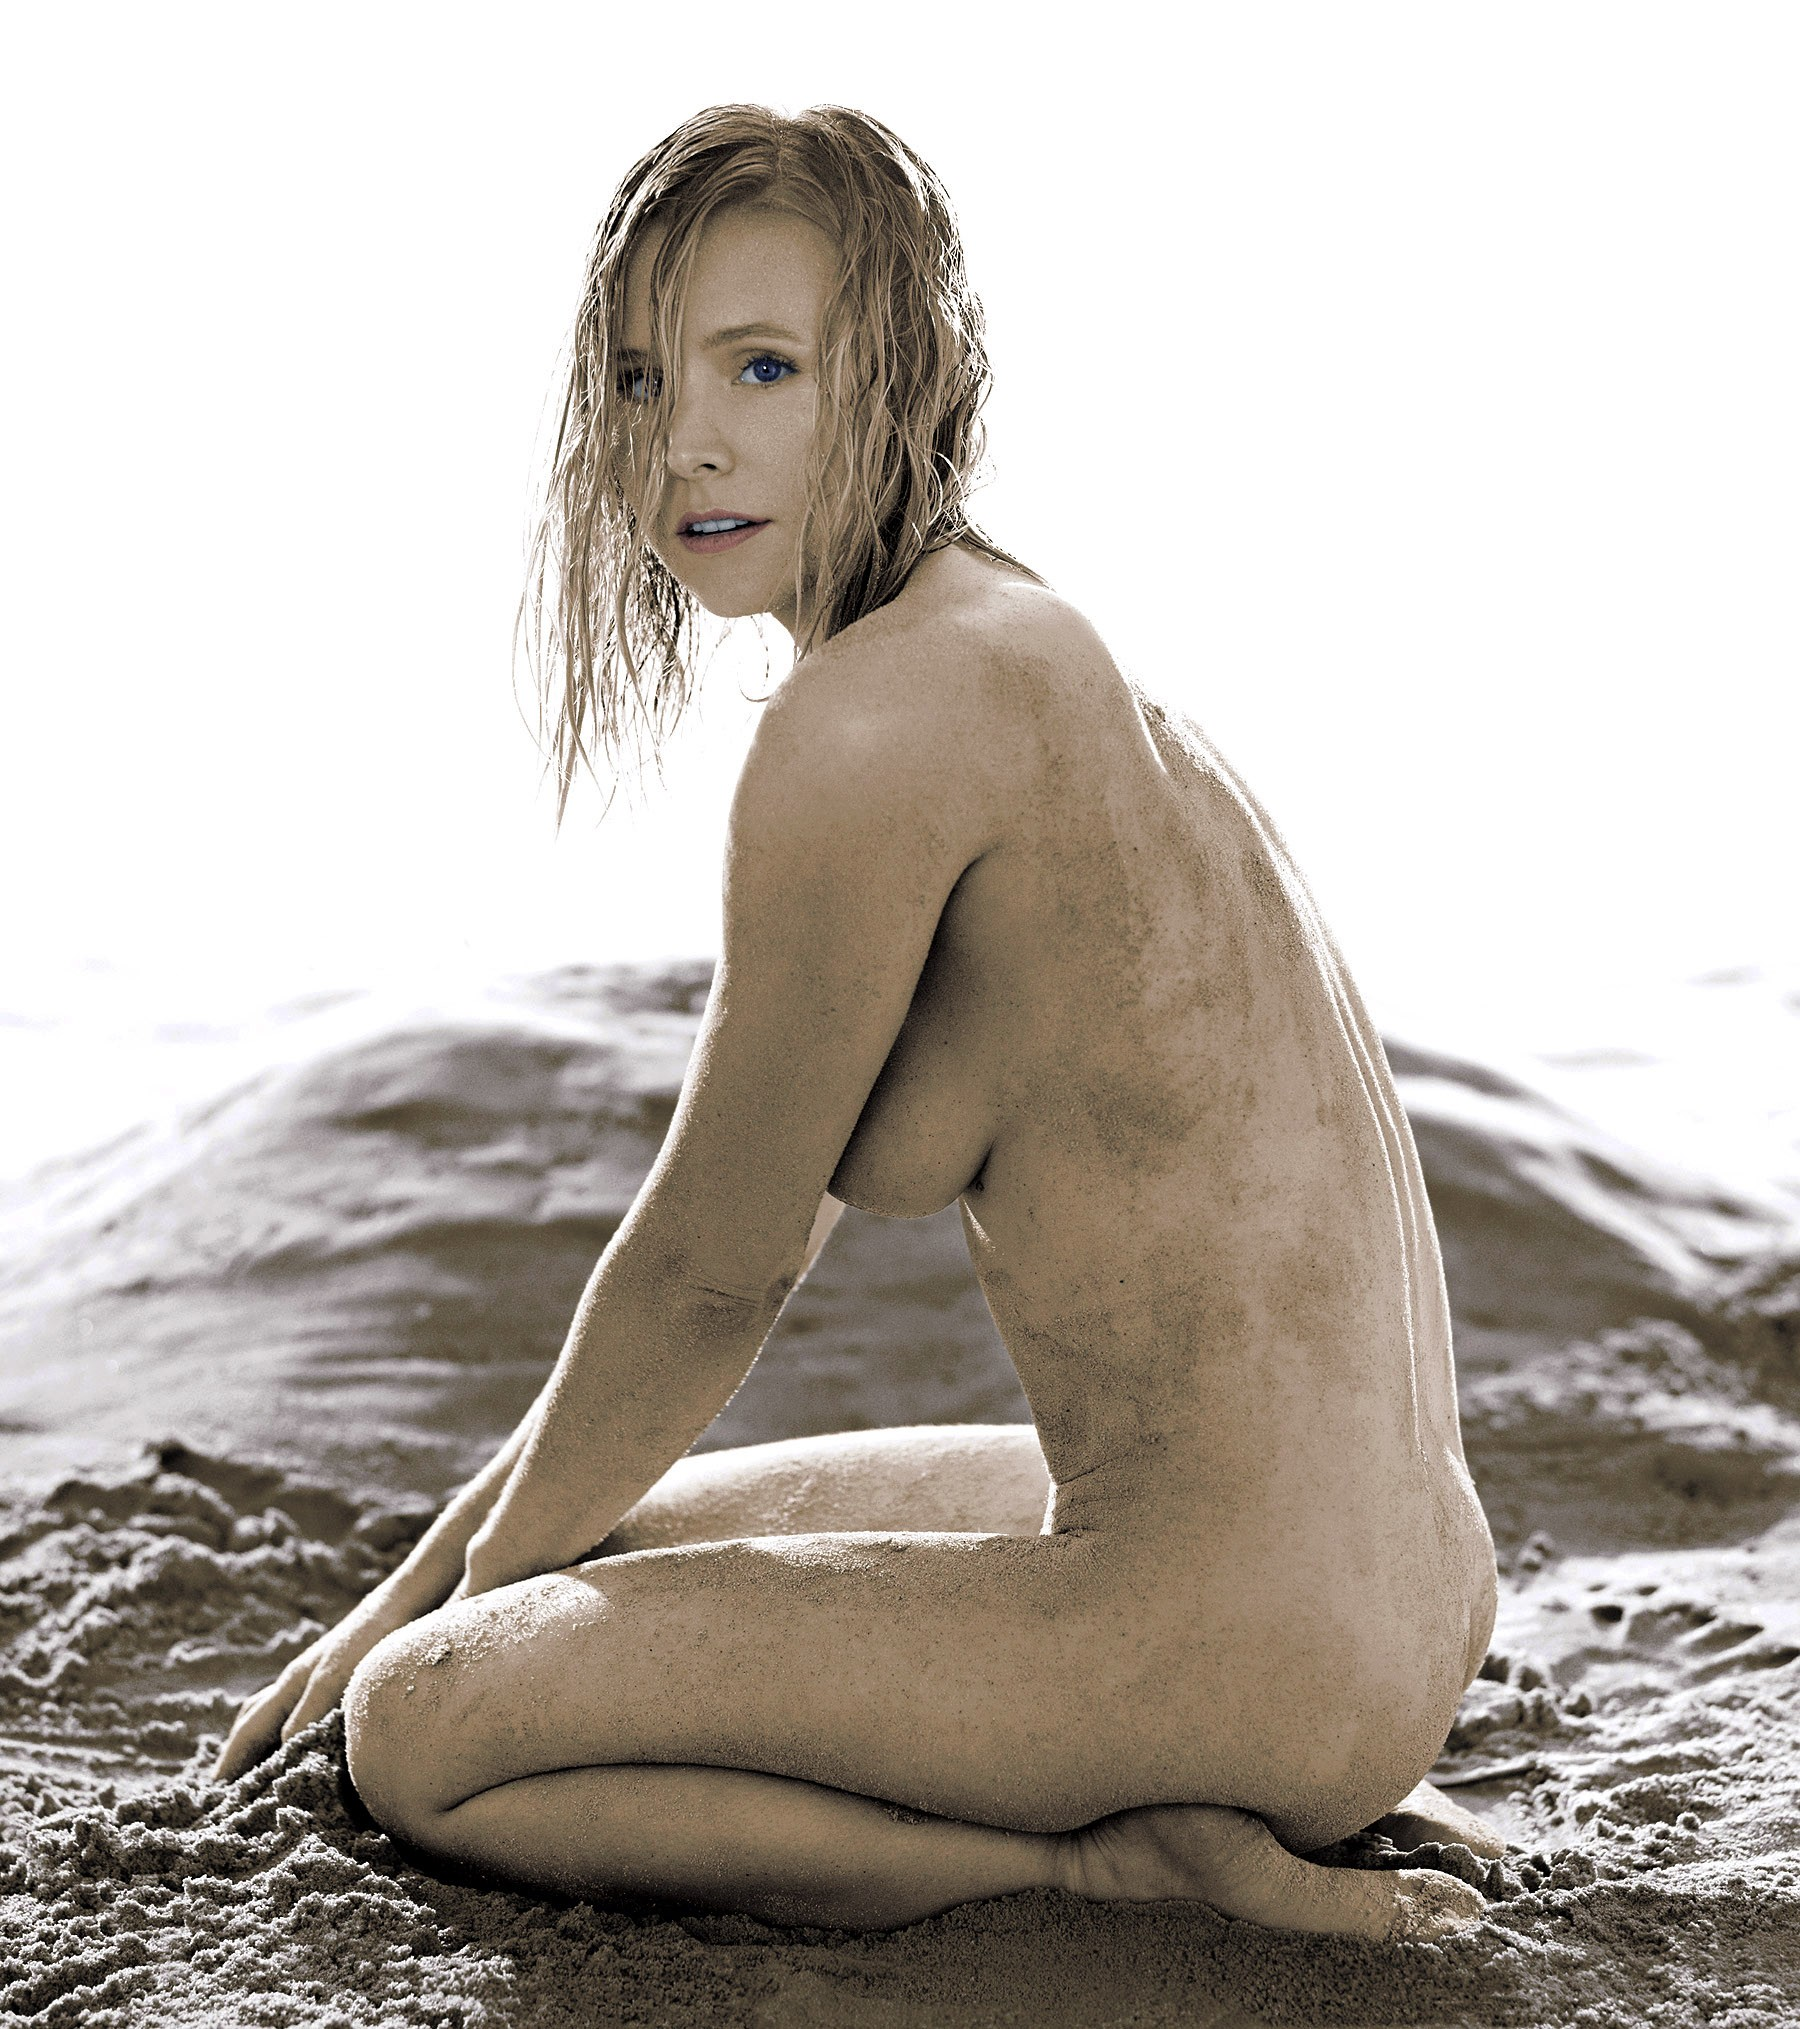 Kristen Bell Nude Photos Nsfw Photo Clips Celebs Unmasked